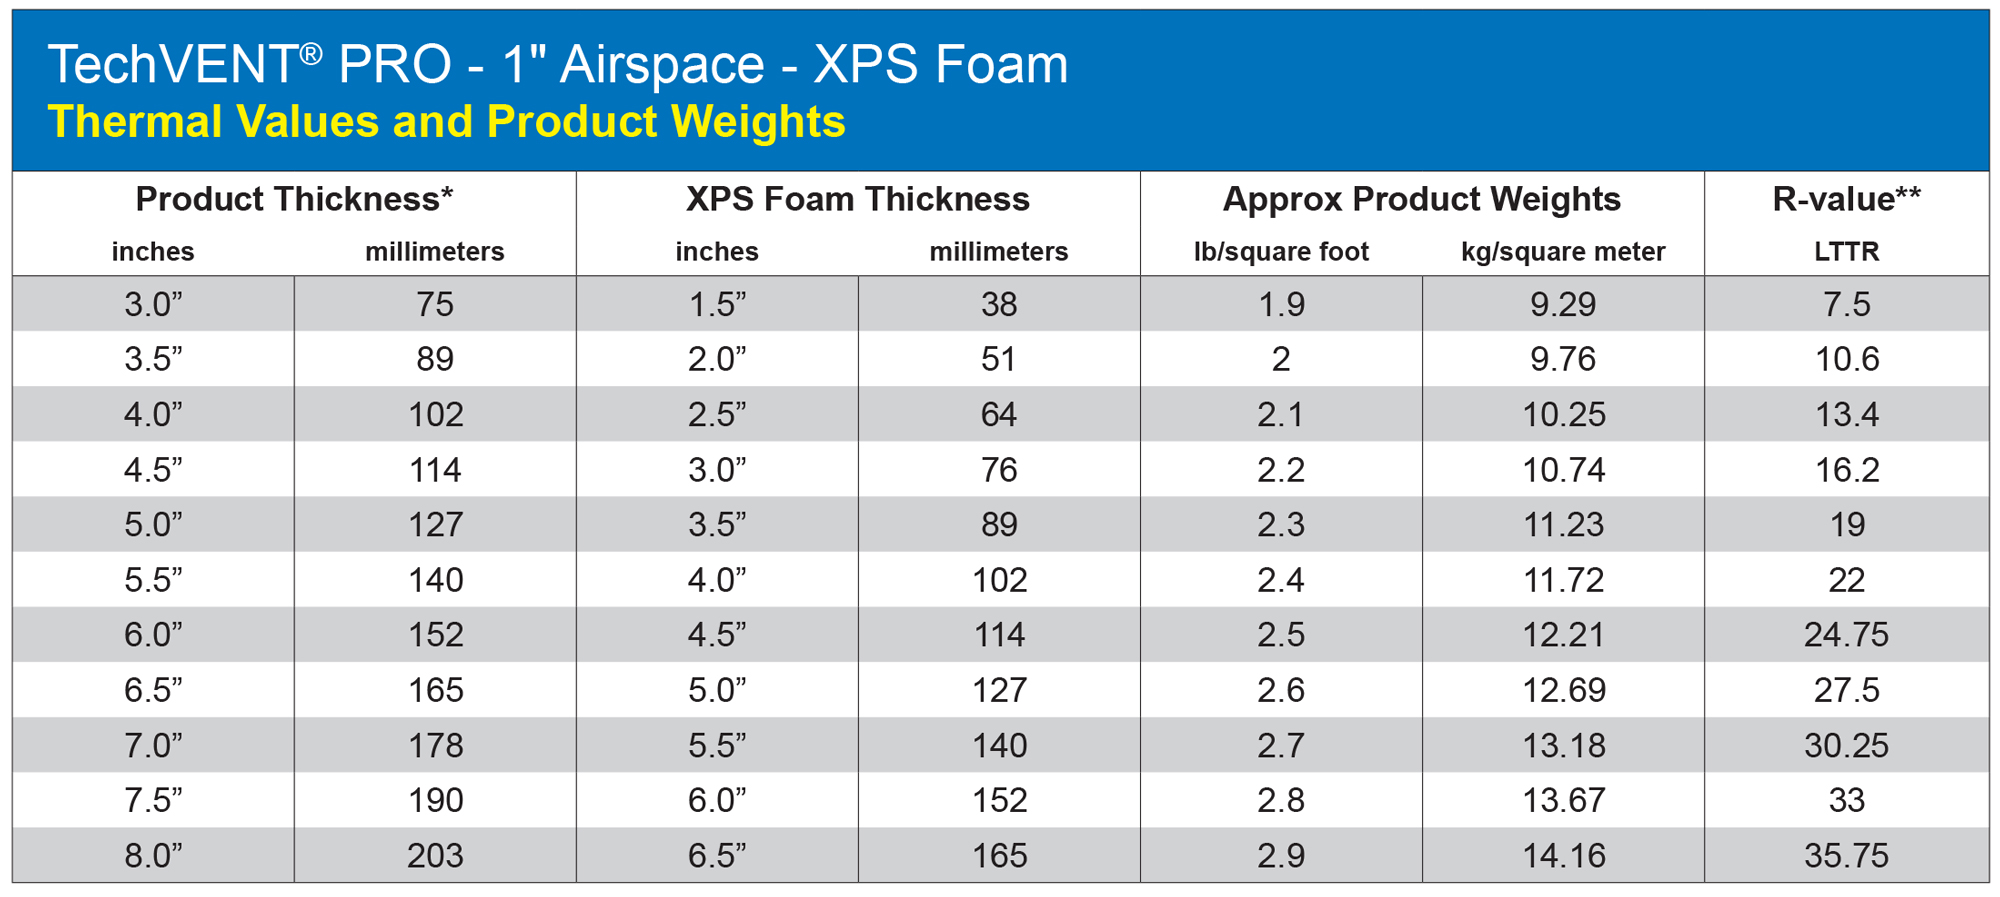 "*The nominal foam thickness is 1 1/2"" less than the overall panel thickness (Tech Vent 1.0"" airspace). **For comparison with LTTR (Long Term Thermal Resistance) values used by the polyiso industry. XPS foam manufacturers recommend ASTM C518 for thermal measurement. LTTR values, supplied by XPSA, were generated per CAN/ULC S770 by a third party laboratory."